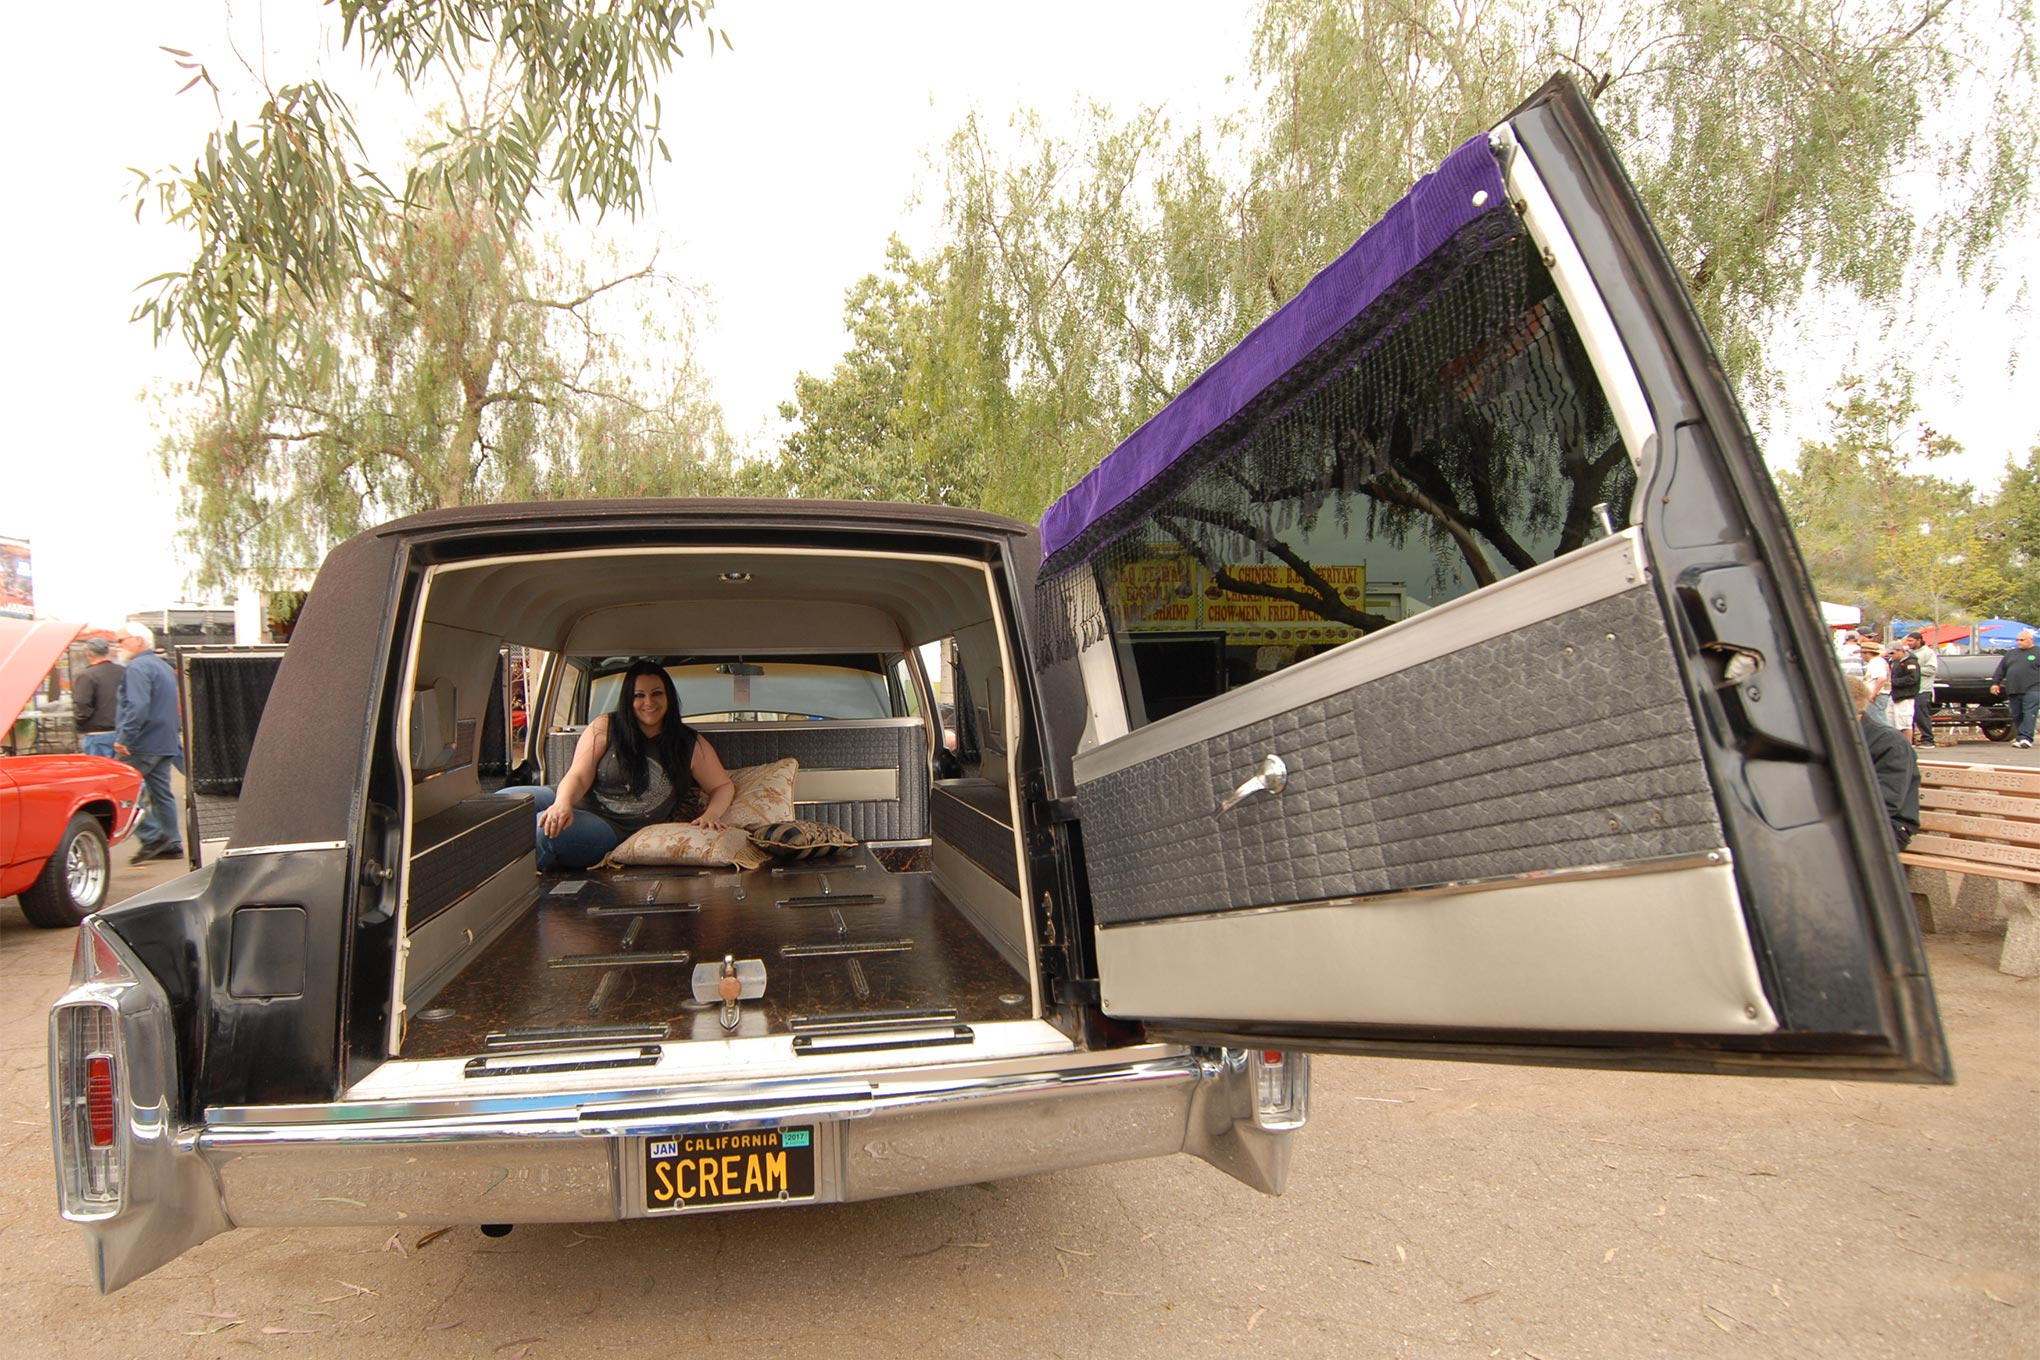 Bakersfield's Marie Wagoner and Danny Saunders displayed this rare pair. Marie's 500-inch '65 Caddy hearse is all original and unbelievably cherry at just 82,400 miles. The unrestored '36 Harley has been in Danny's family since his grandpa purchased what he claims to be the sixth knucklehead off the assembly line.